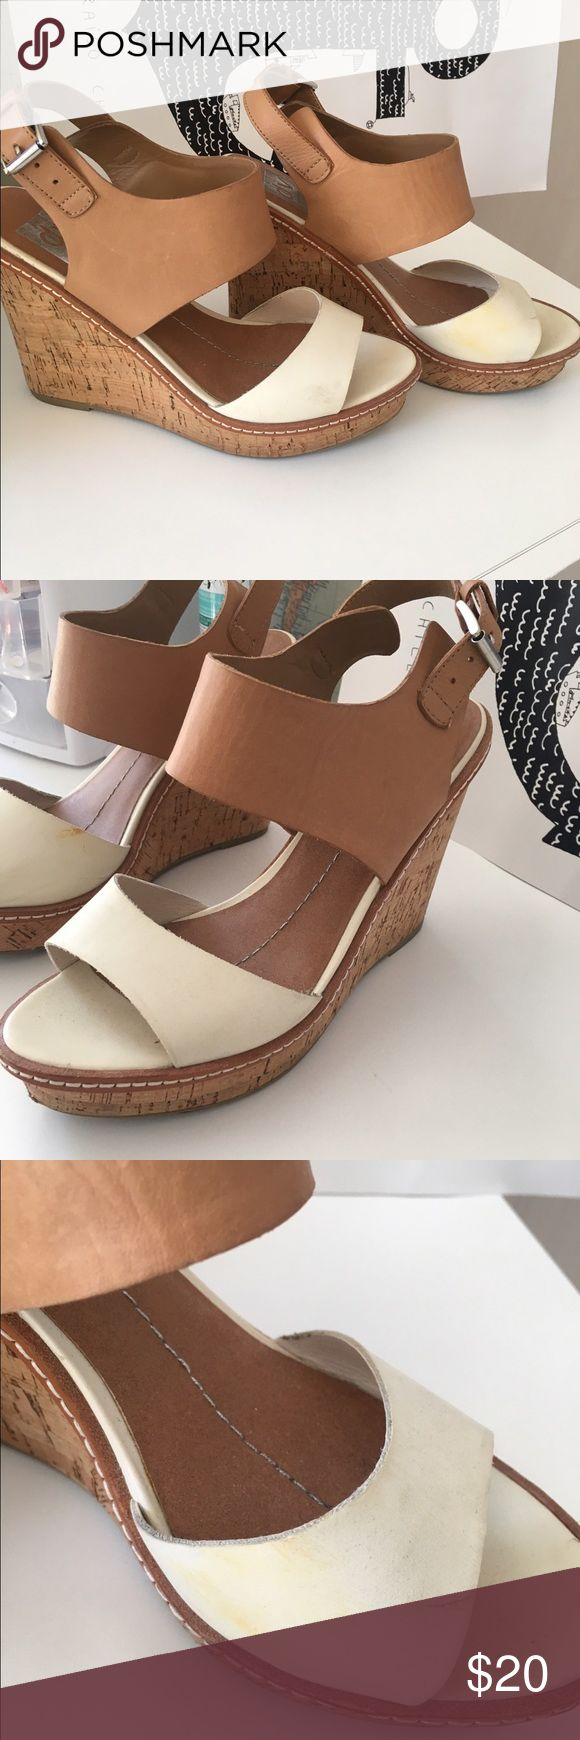 Cork Wedges Dolce Vita tan and white cork wedges. Buckle on the side. Slight wear in the form of scuff marks, could probably clean most of them off. Size 9 but fit small (I am a seven and they fit me). Dolce Vita Shoes Wedges